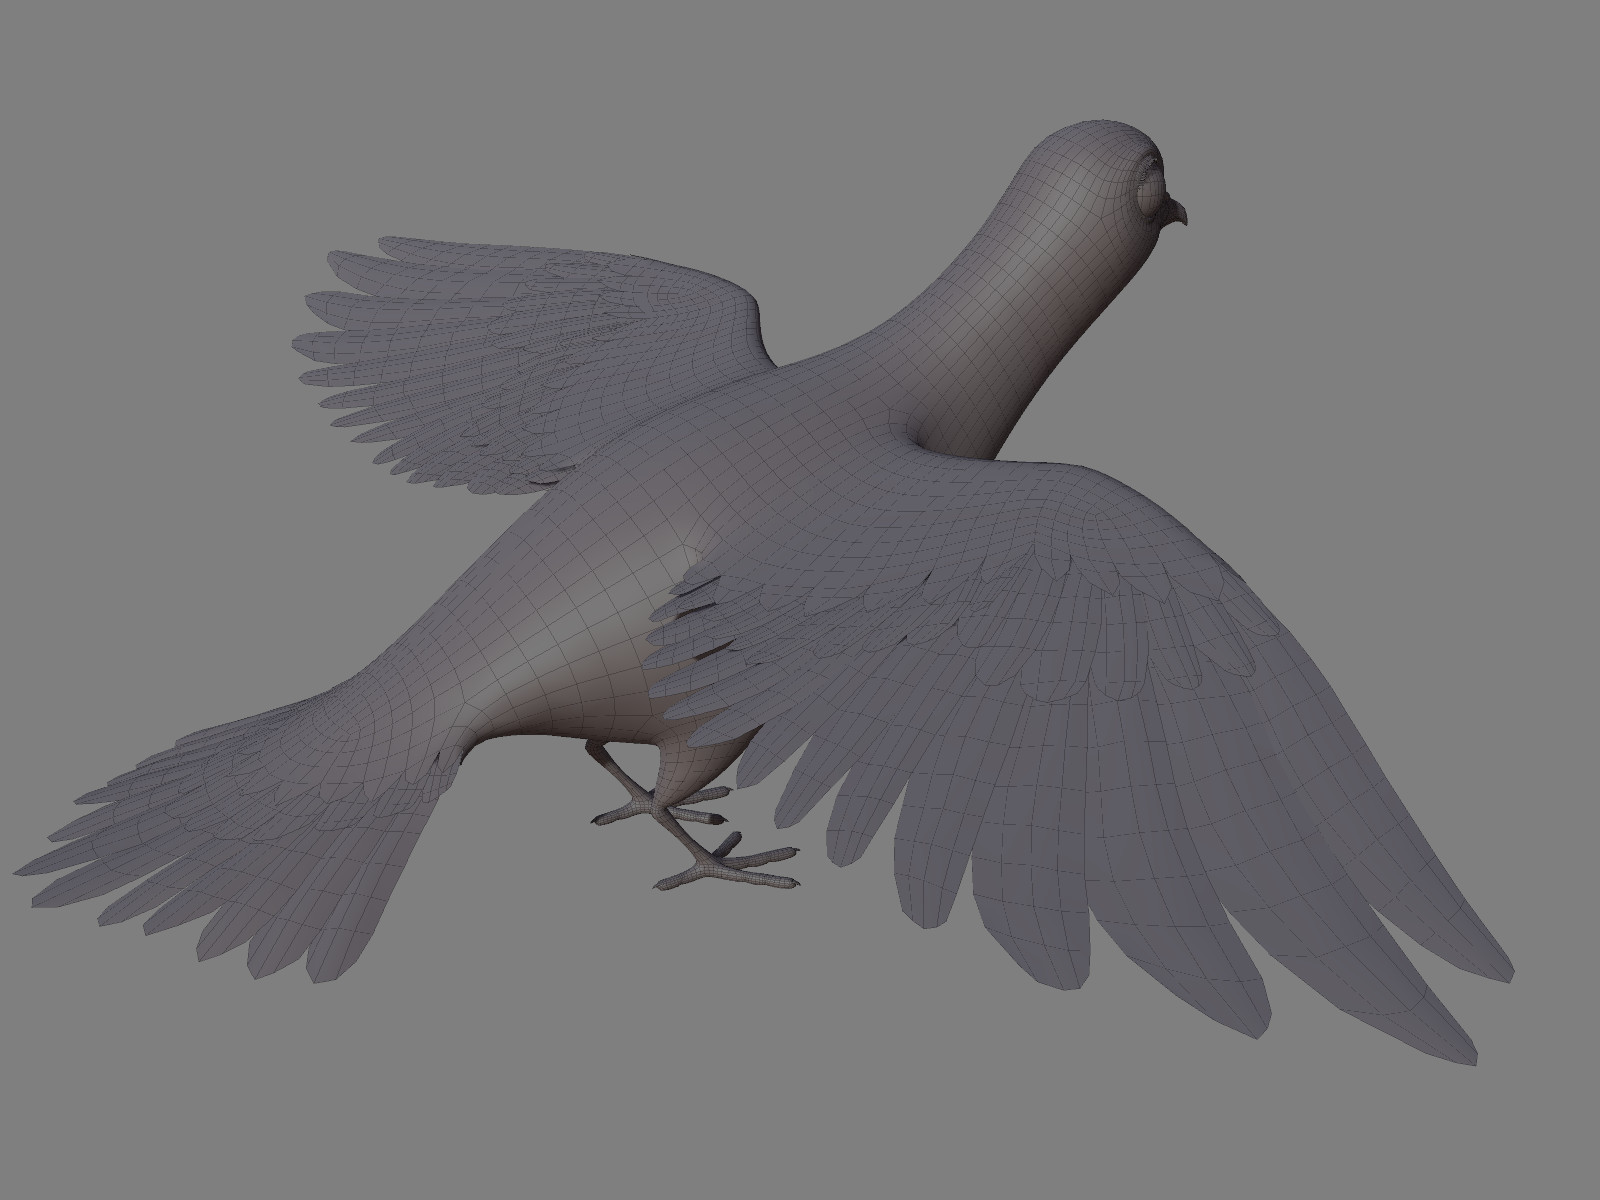 Olivier couston dove02